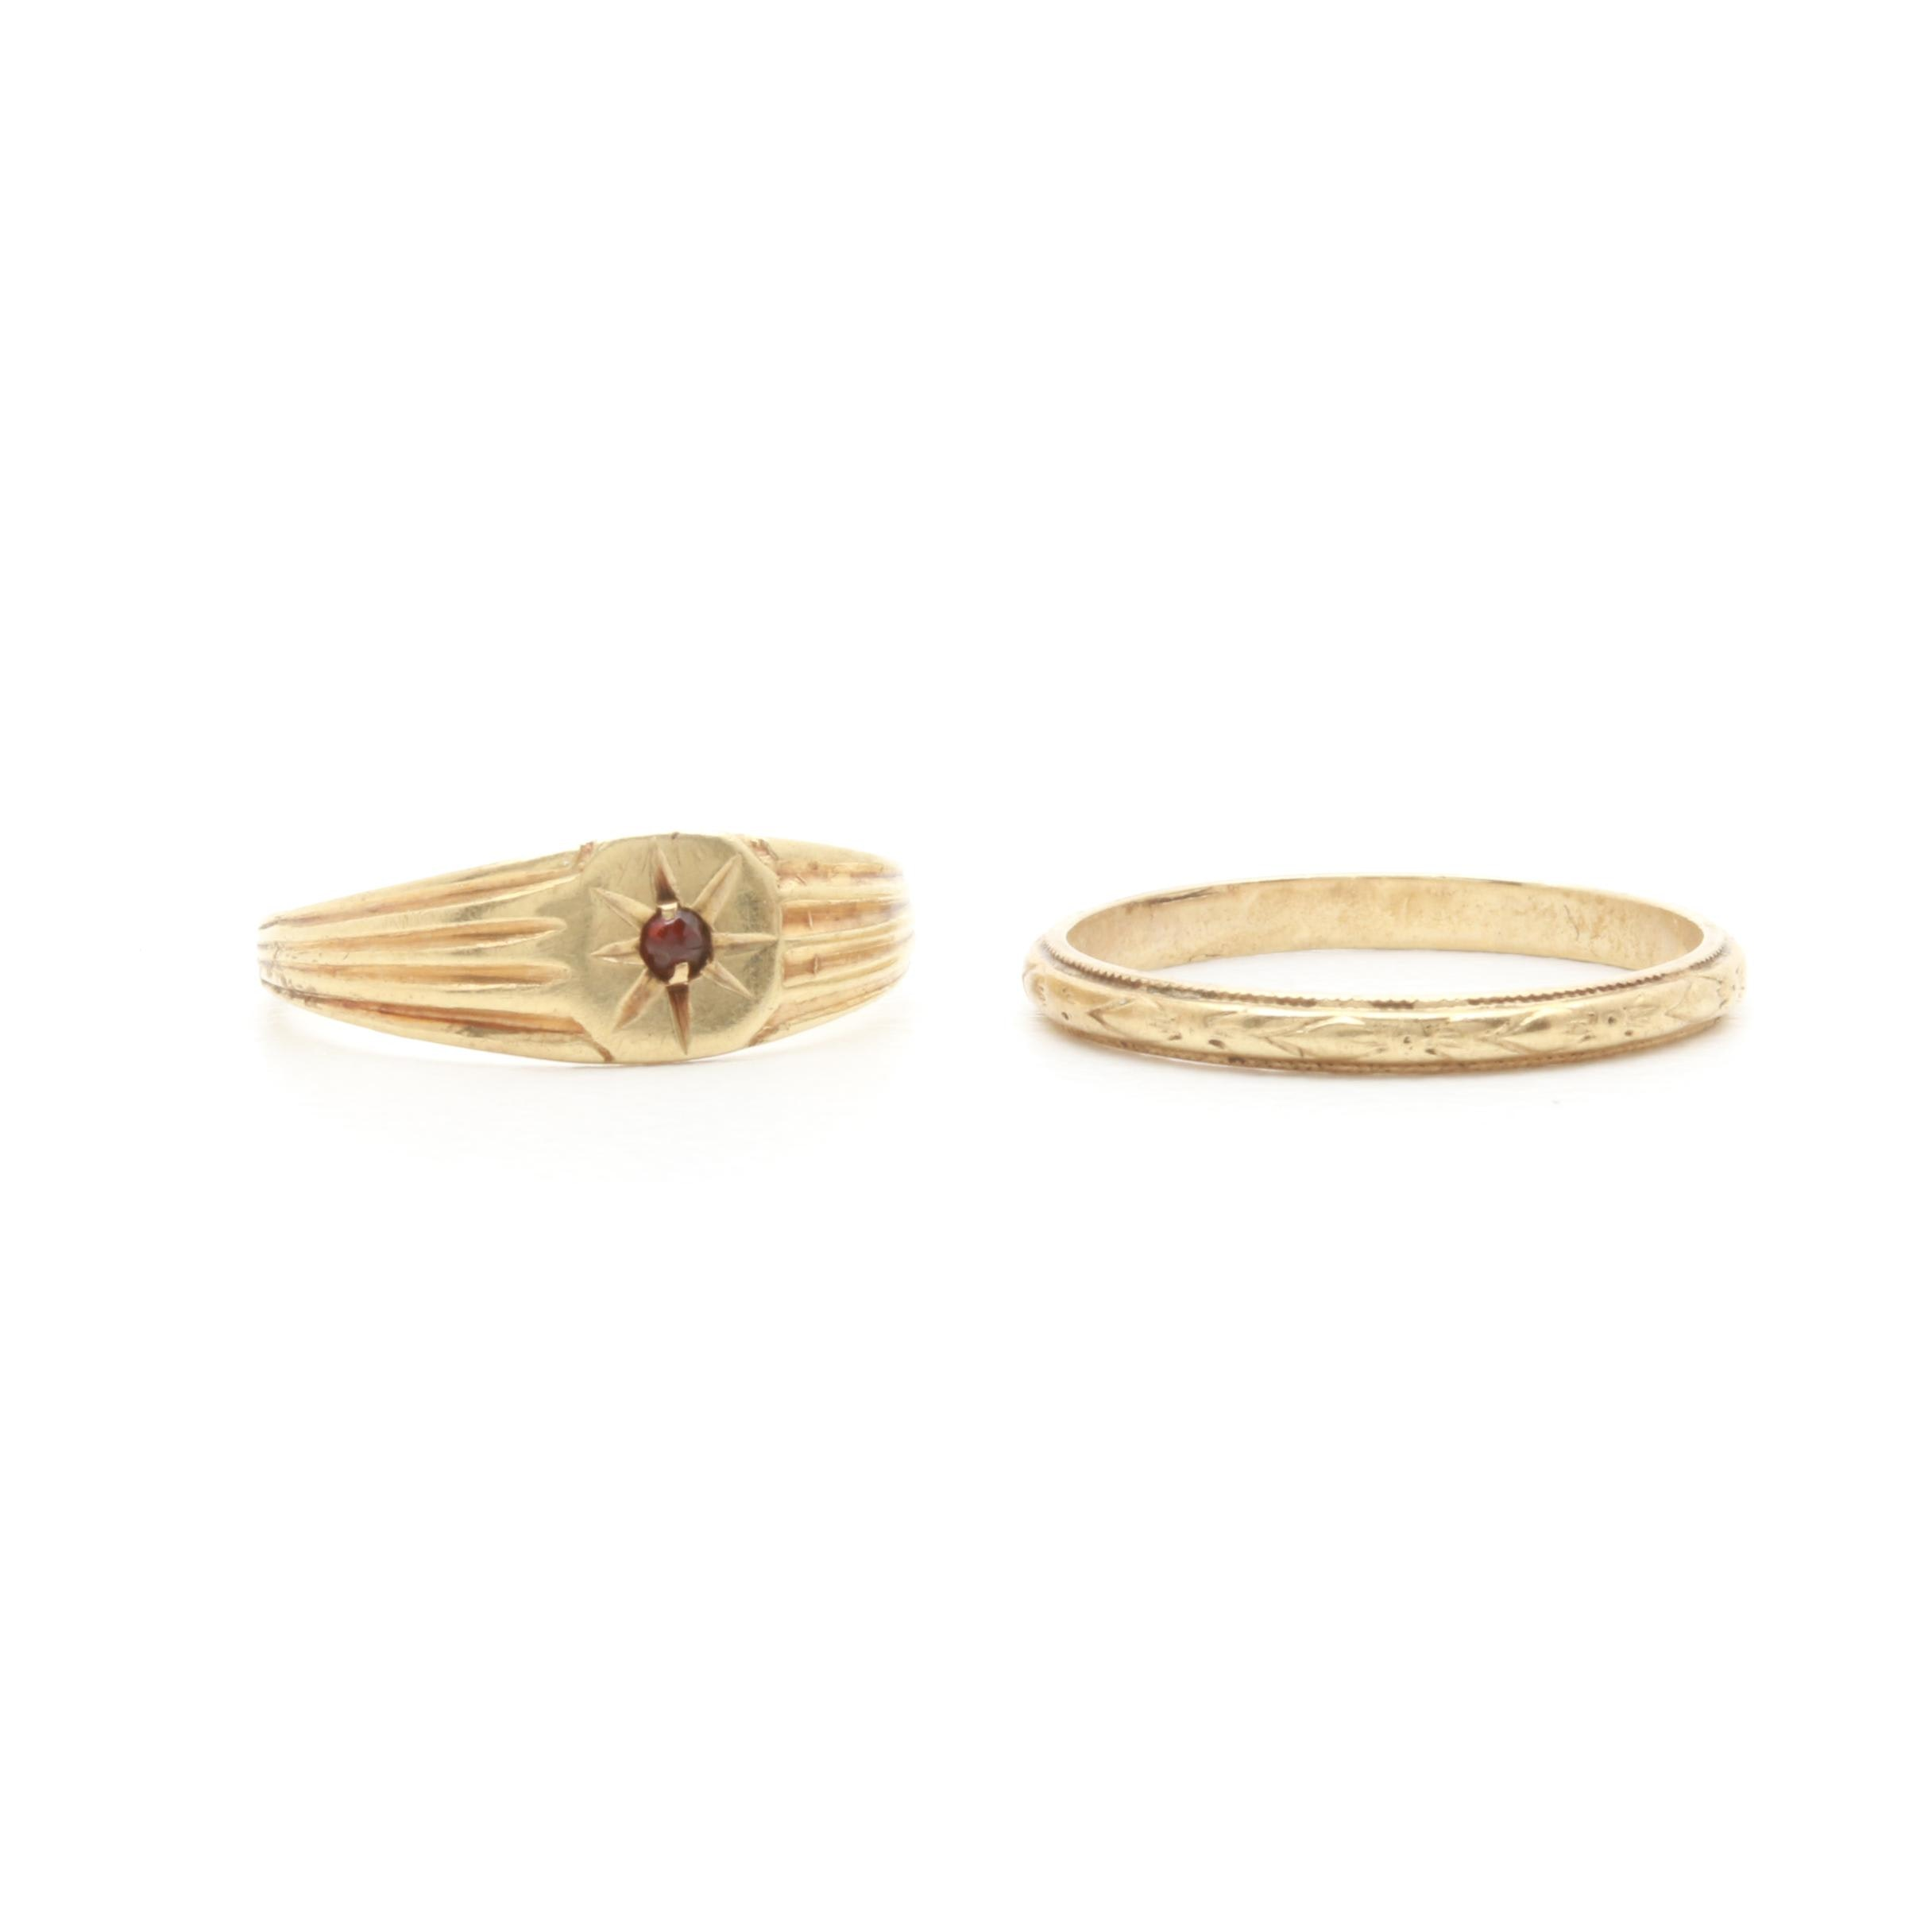 10K and 14K Yellow Gold Rings Including Garnet